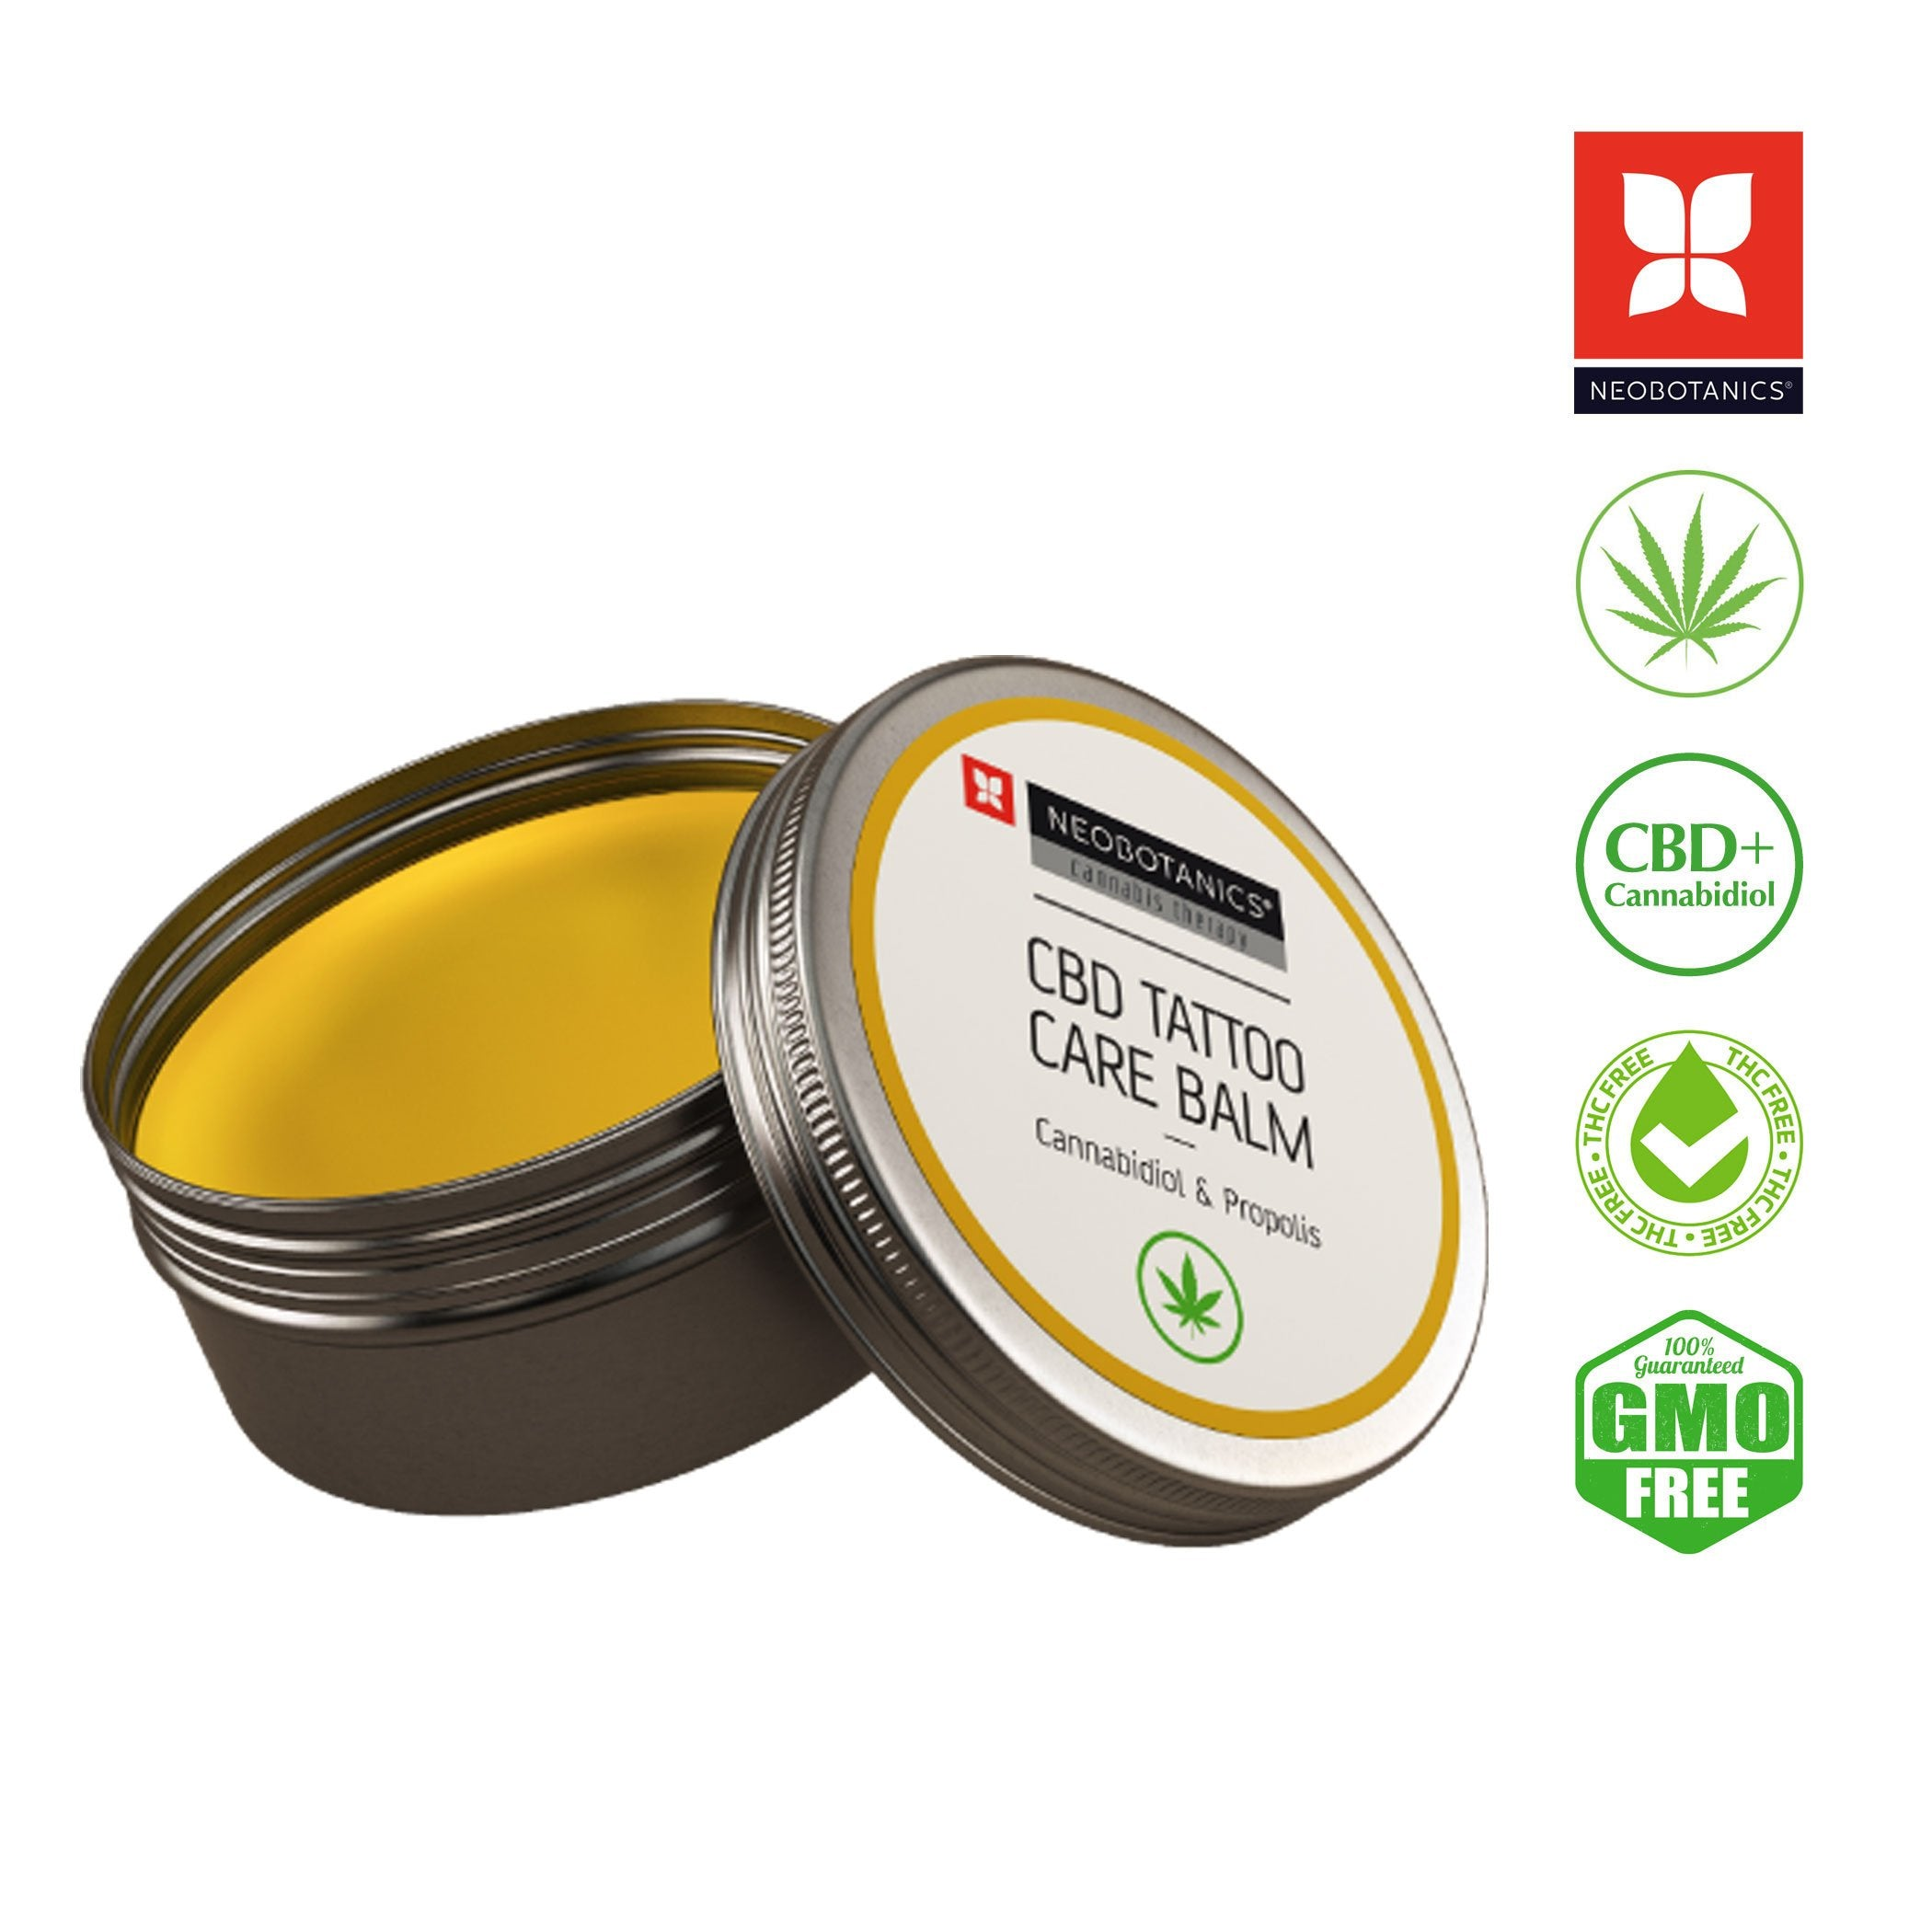 CBD TATTOO CARE BALM